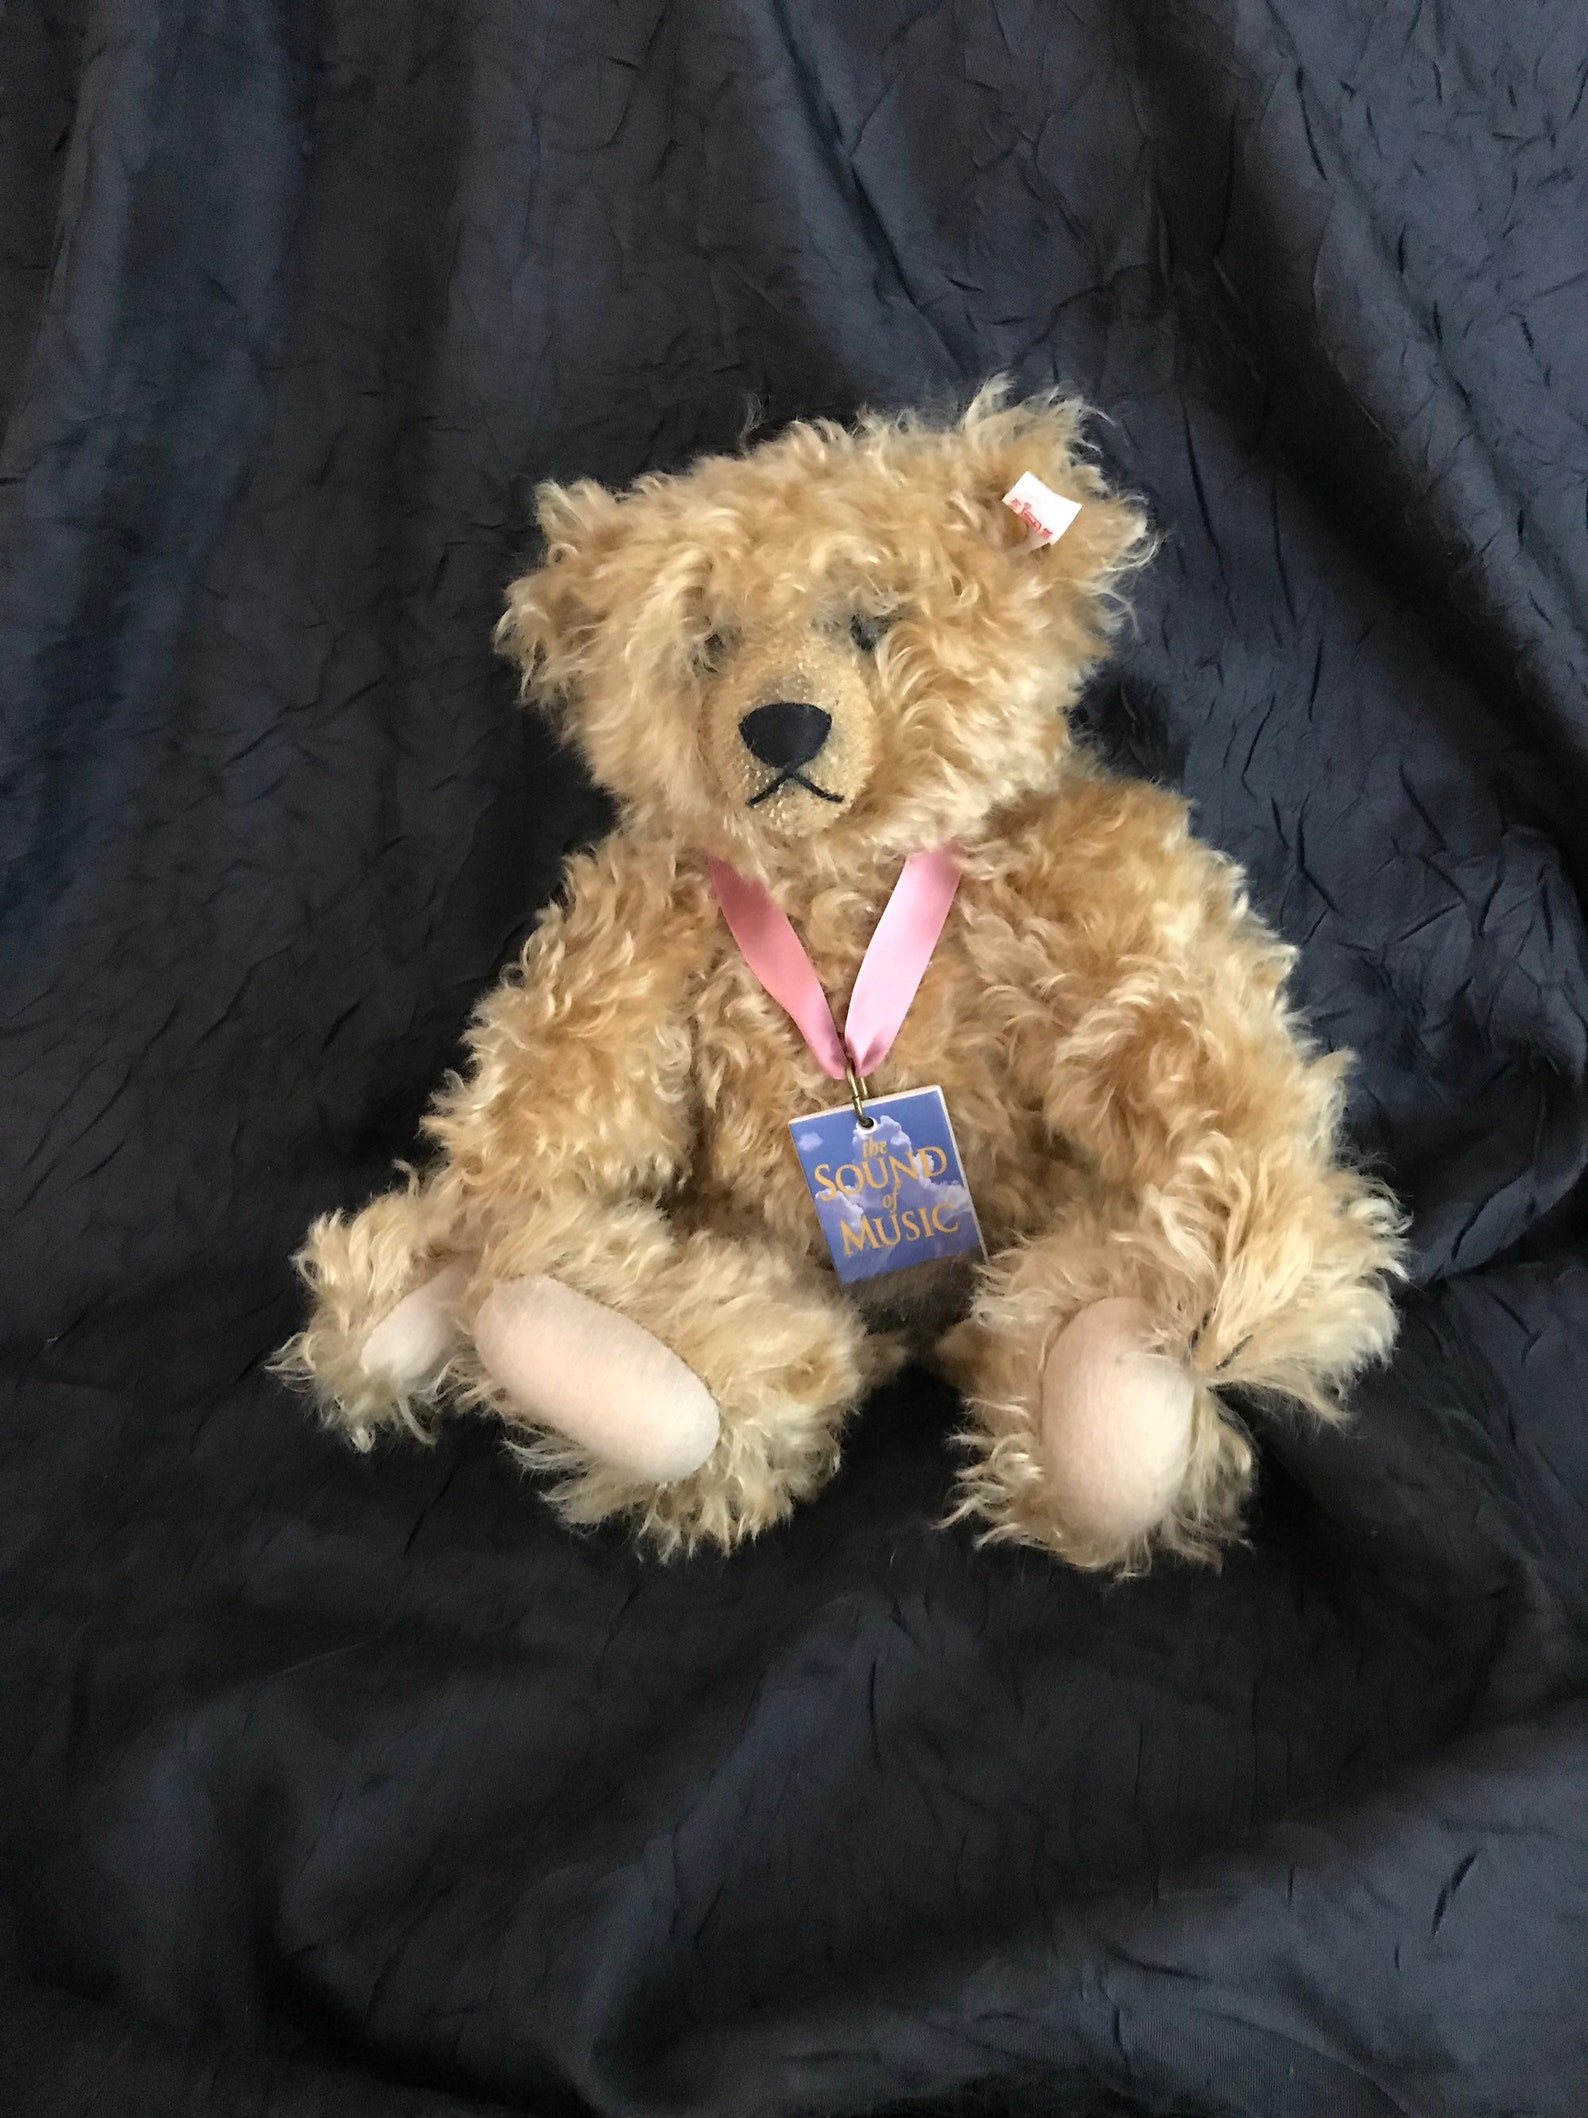 Steiff limited edition sound of music bear with music box.